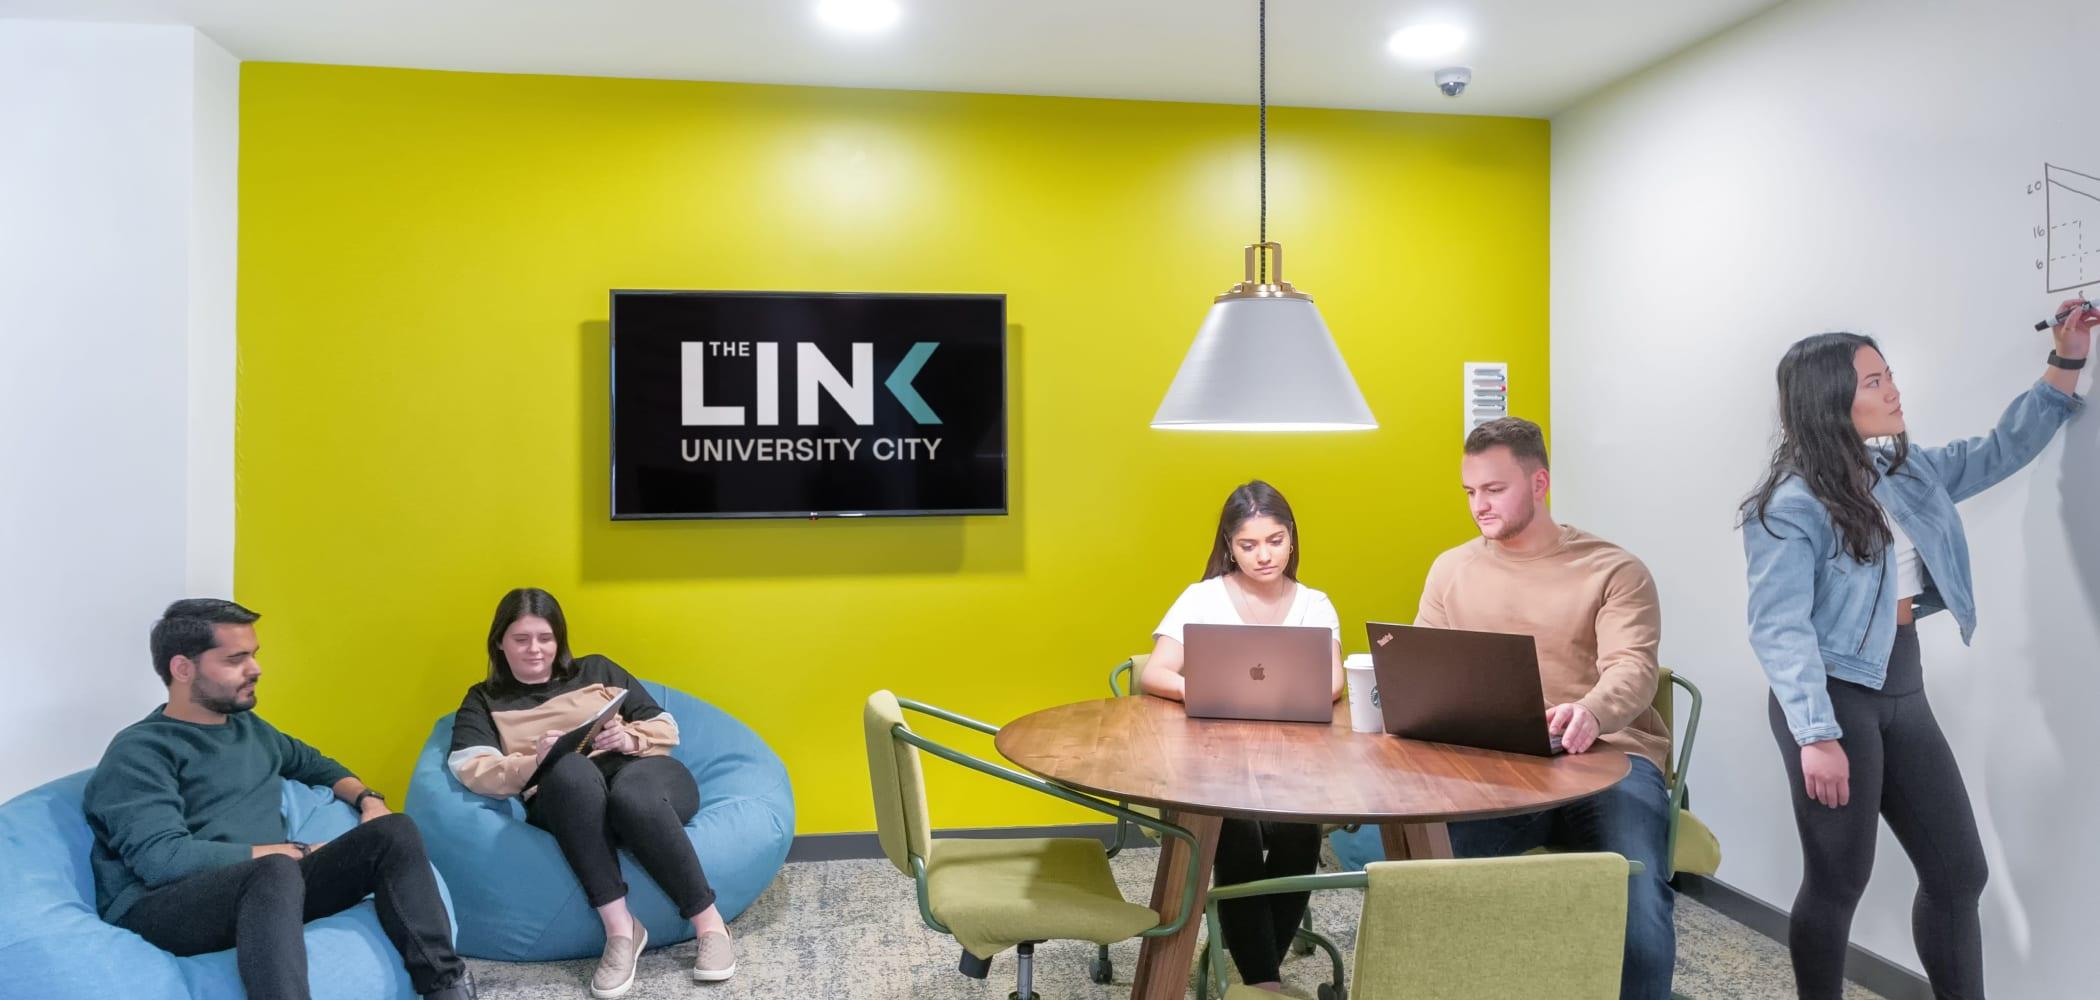 Small group study room at The Link University City in Philadelphia, Pennsylvania